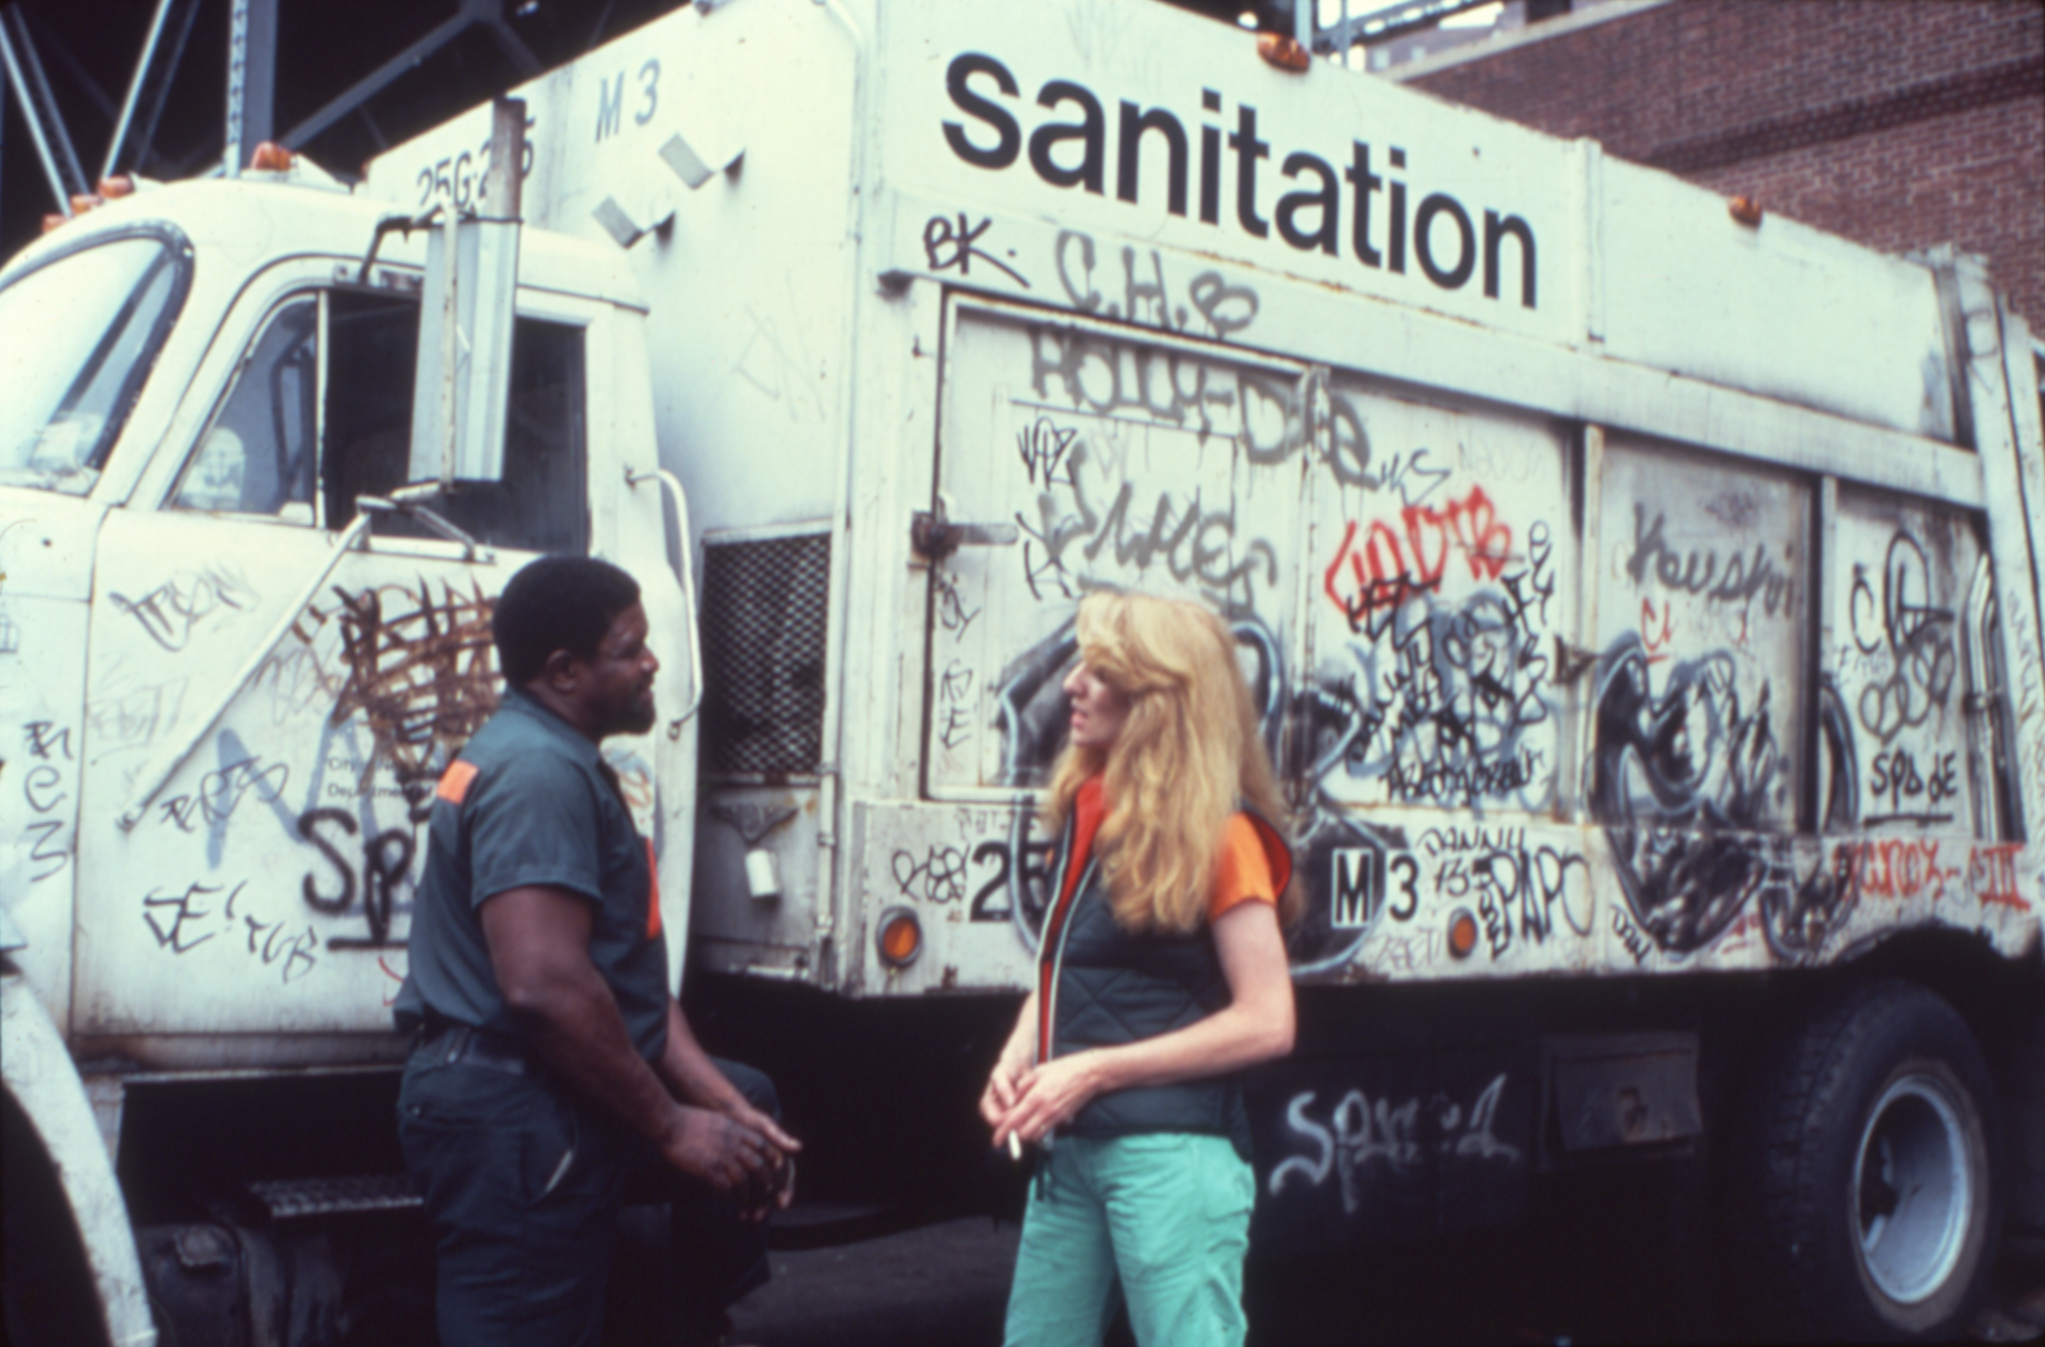 Touch Sanitation, Ukeles